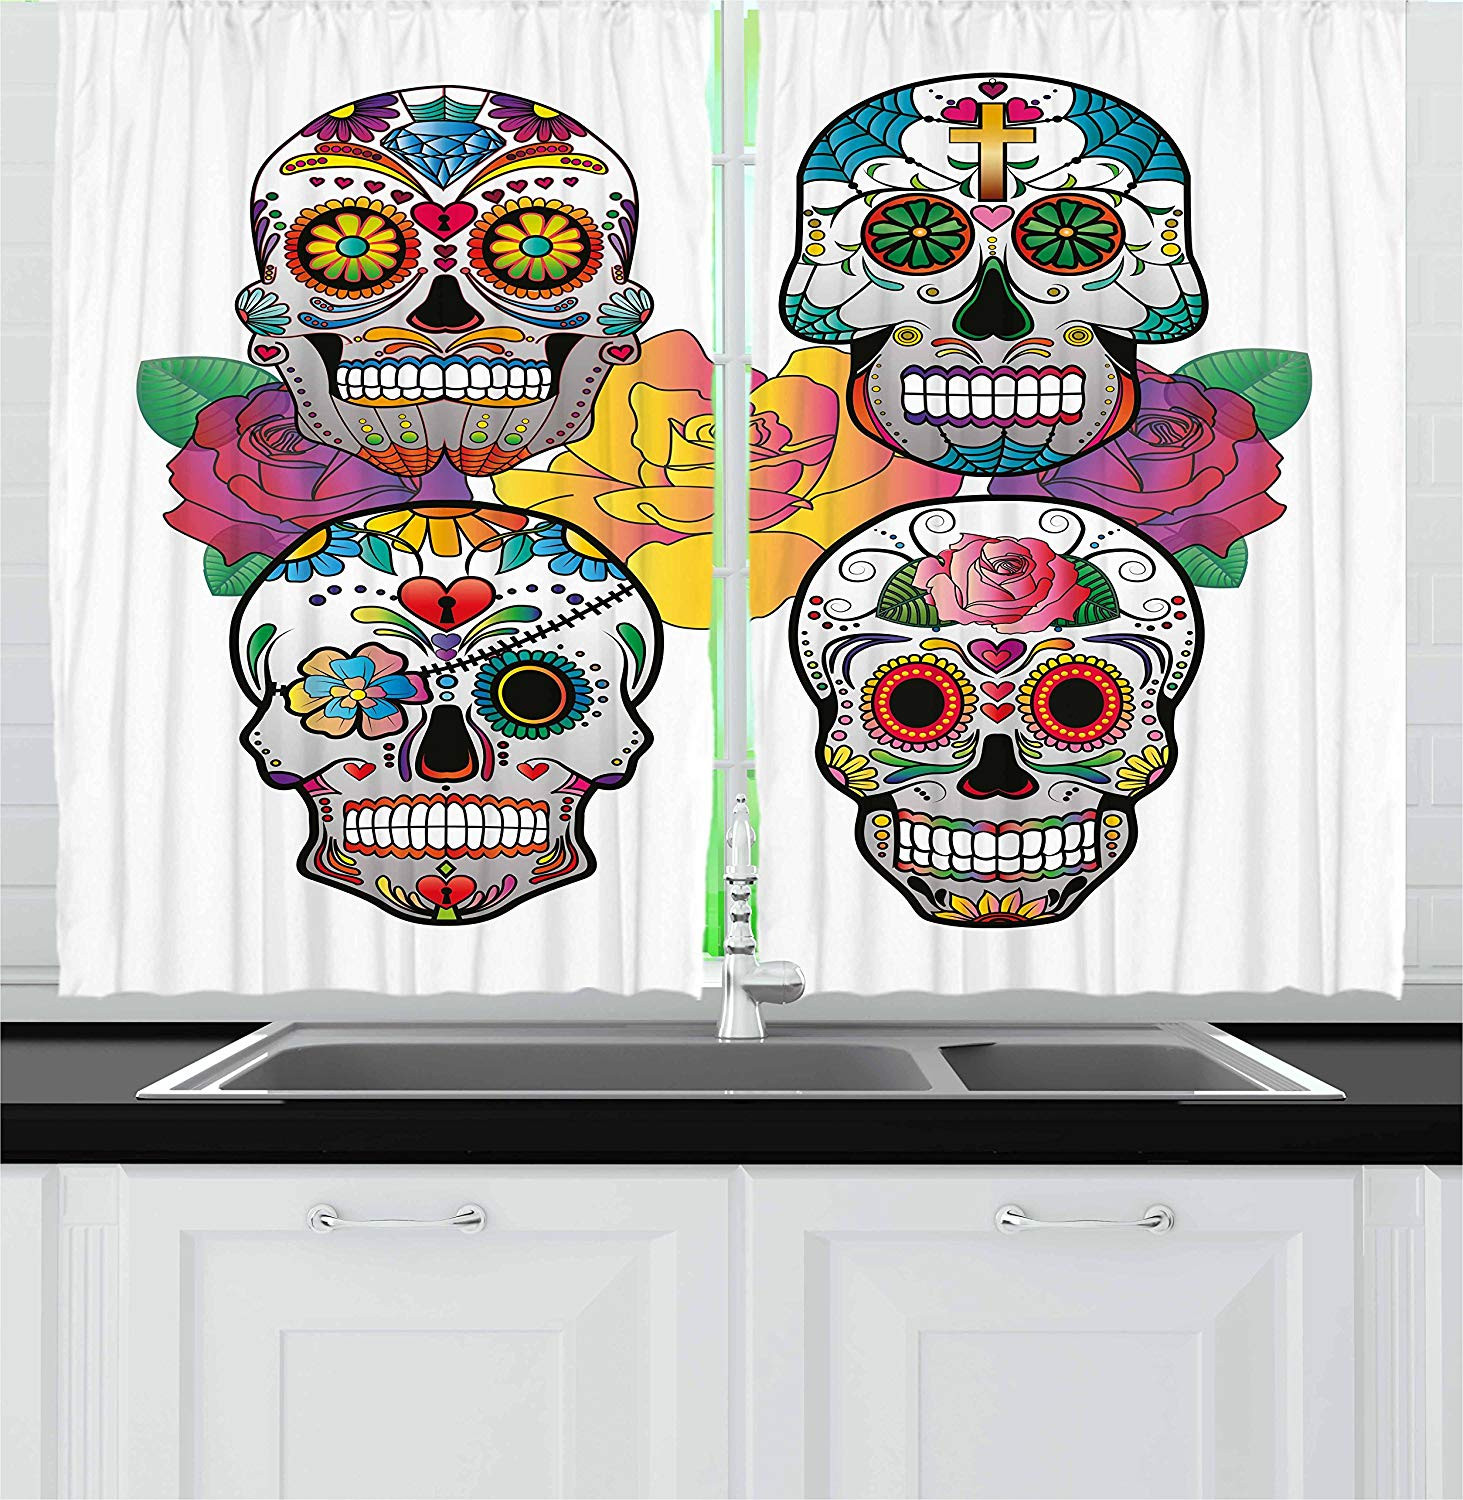 Best ideas about Sugar Skull Kitchen Decor . Save or Pin Sugar Skull Decor Kitchen Curtains My Sugar Skulls Now.